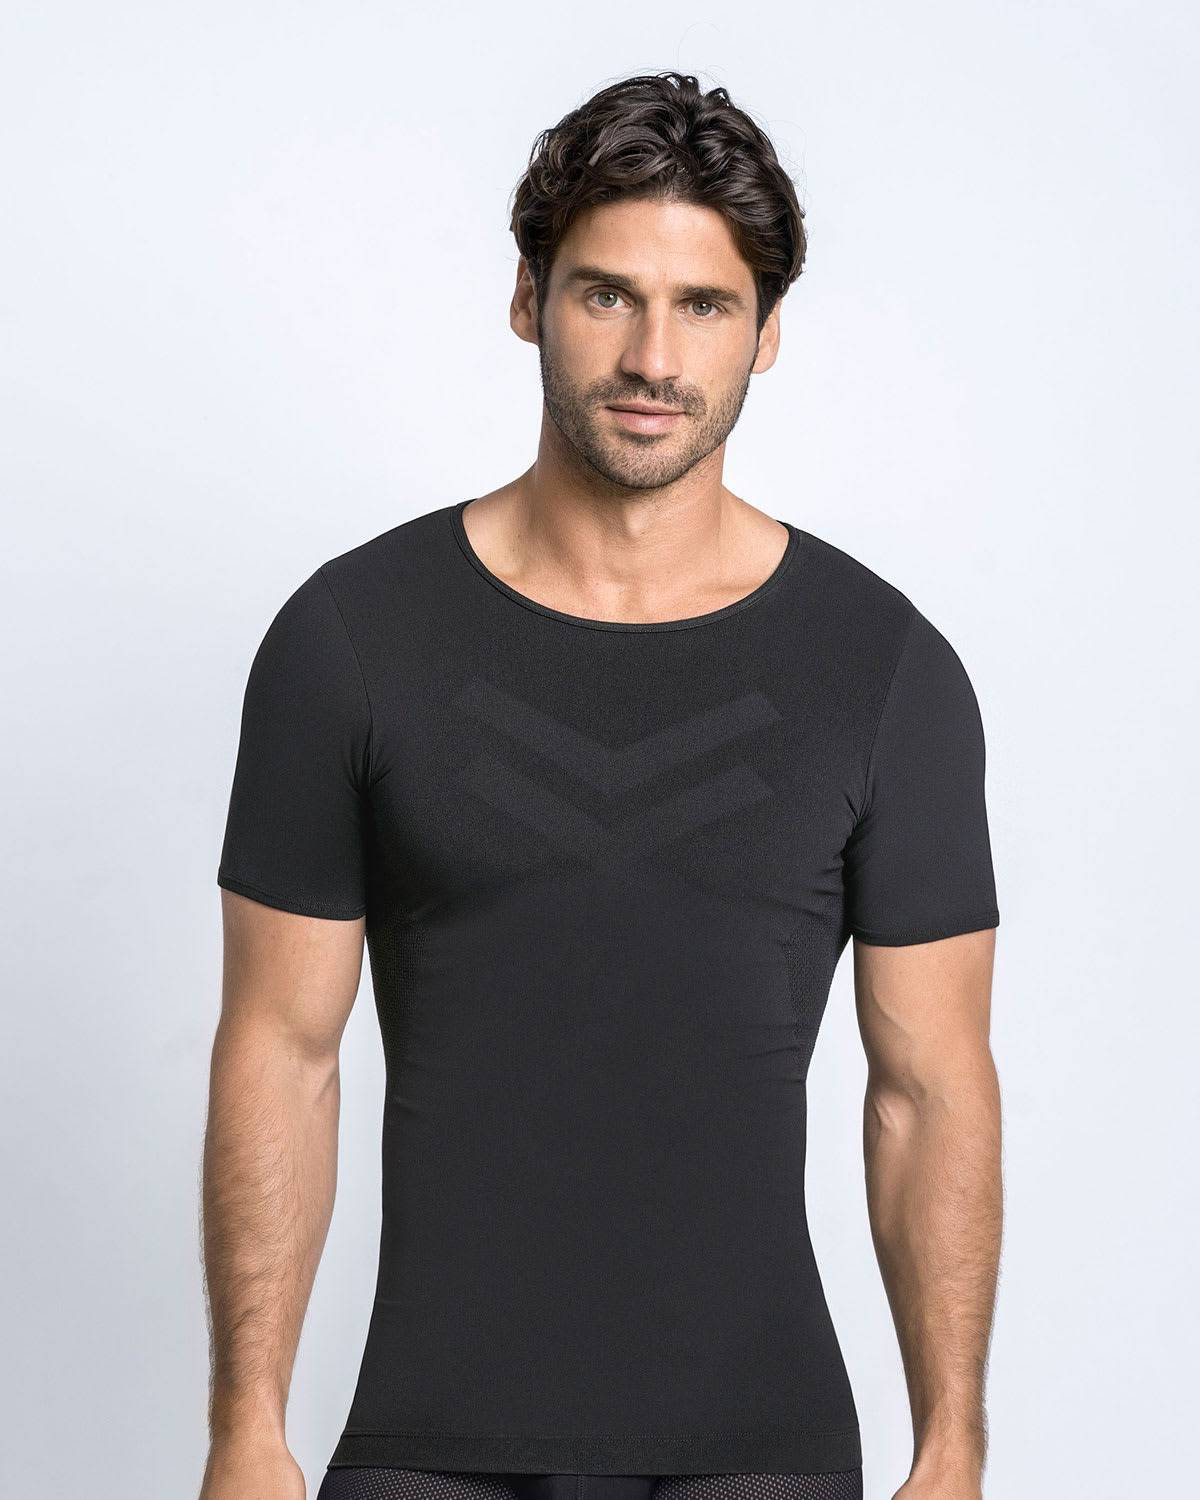 Leo Seamless Compression Shirt with Technology for Total Comfort - T-Sport